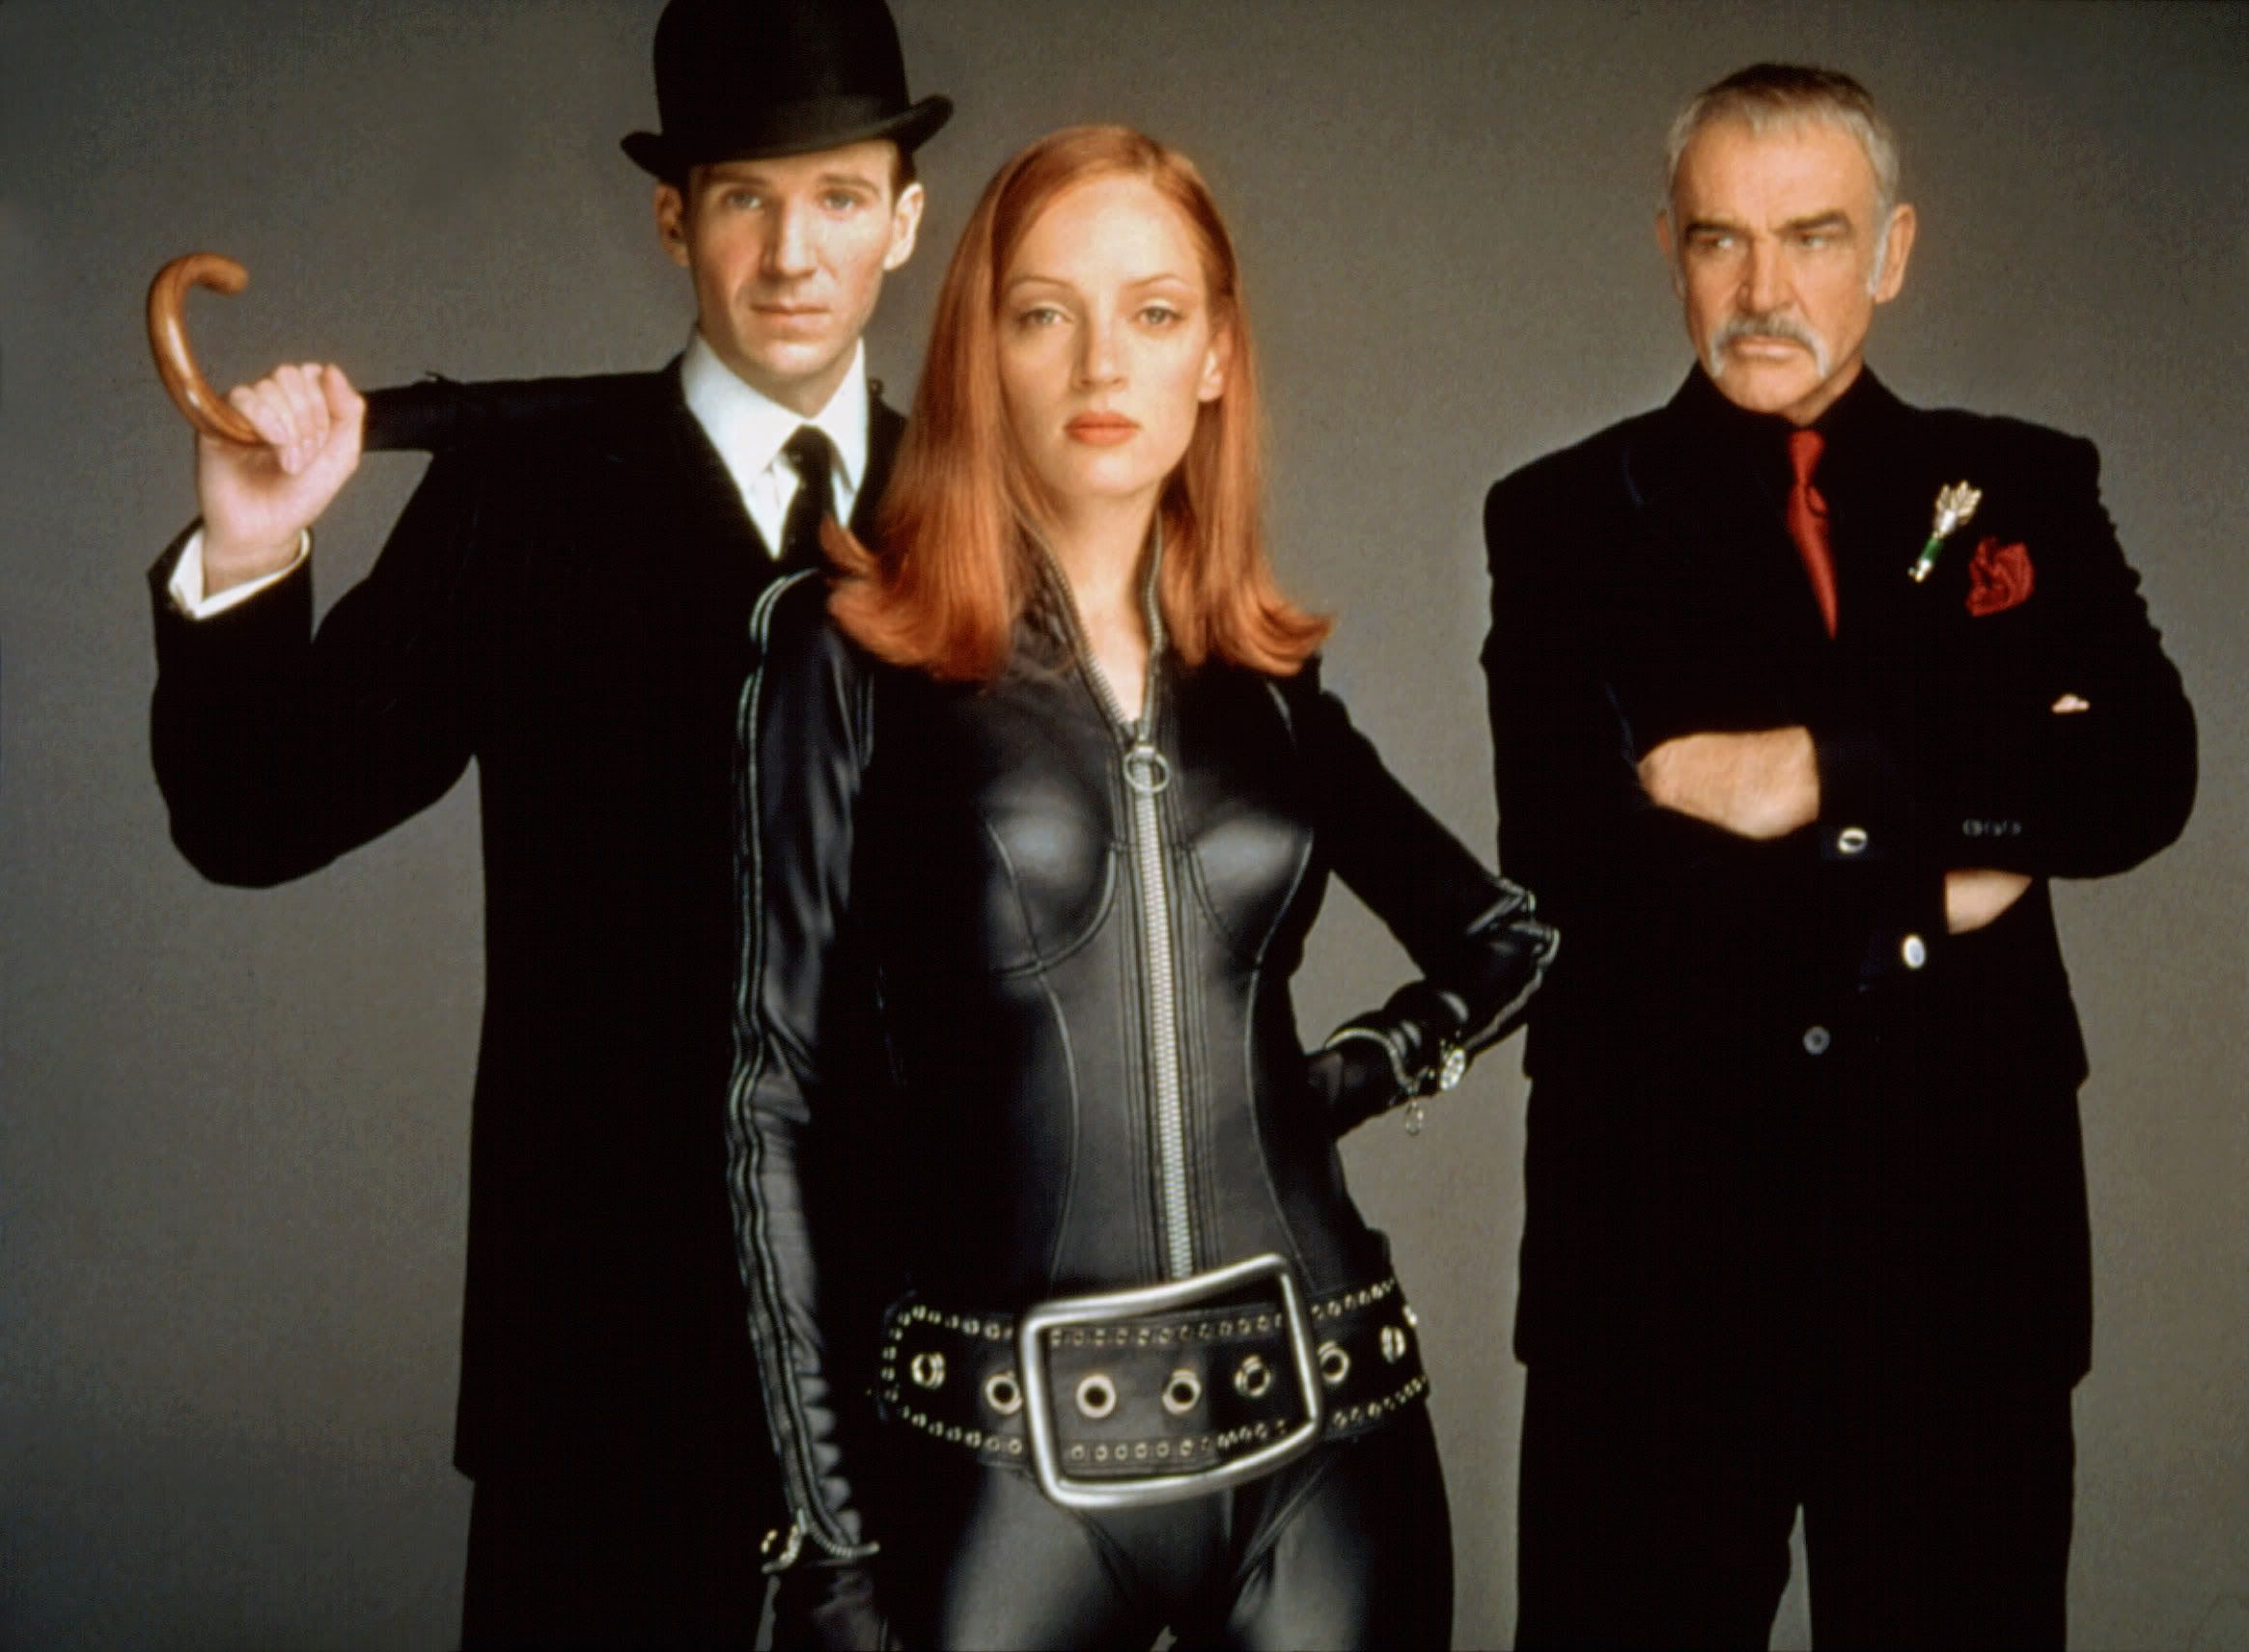 Steed (Ralph Fiennes), Mrs Peel (Uma Thurman) and villain Sir August de Wynter (Sean Connery) in The Avengers (1998)